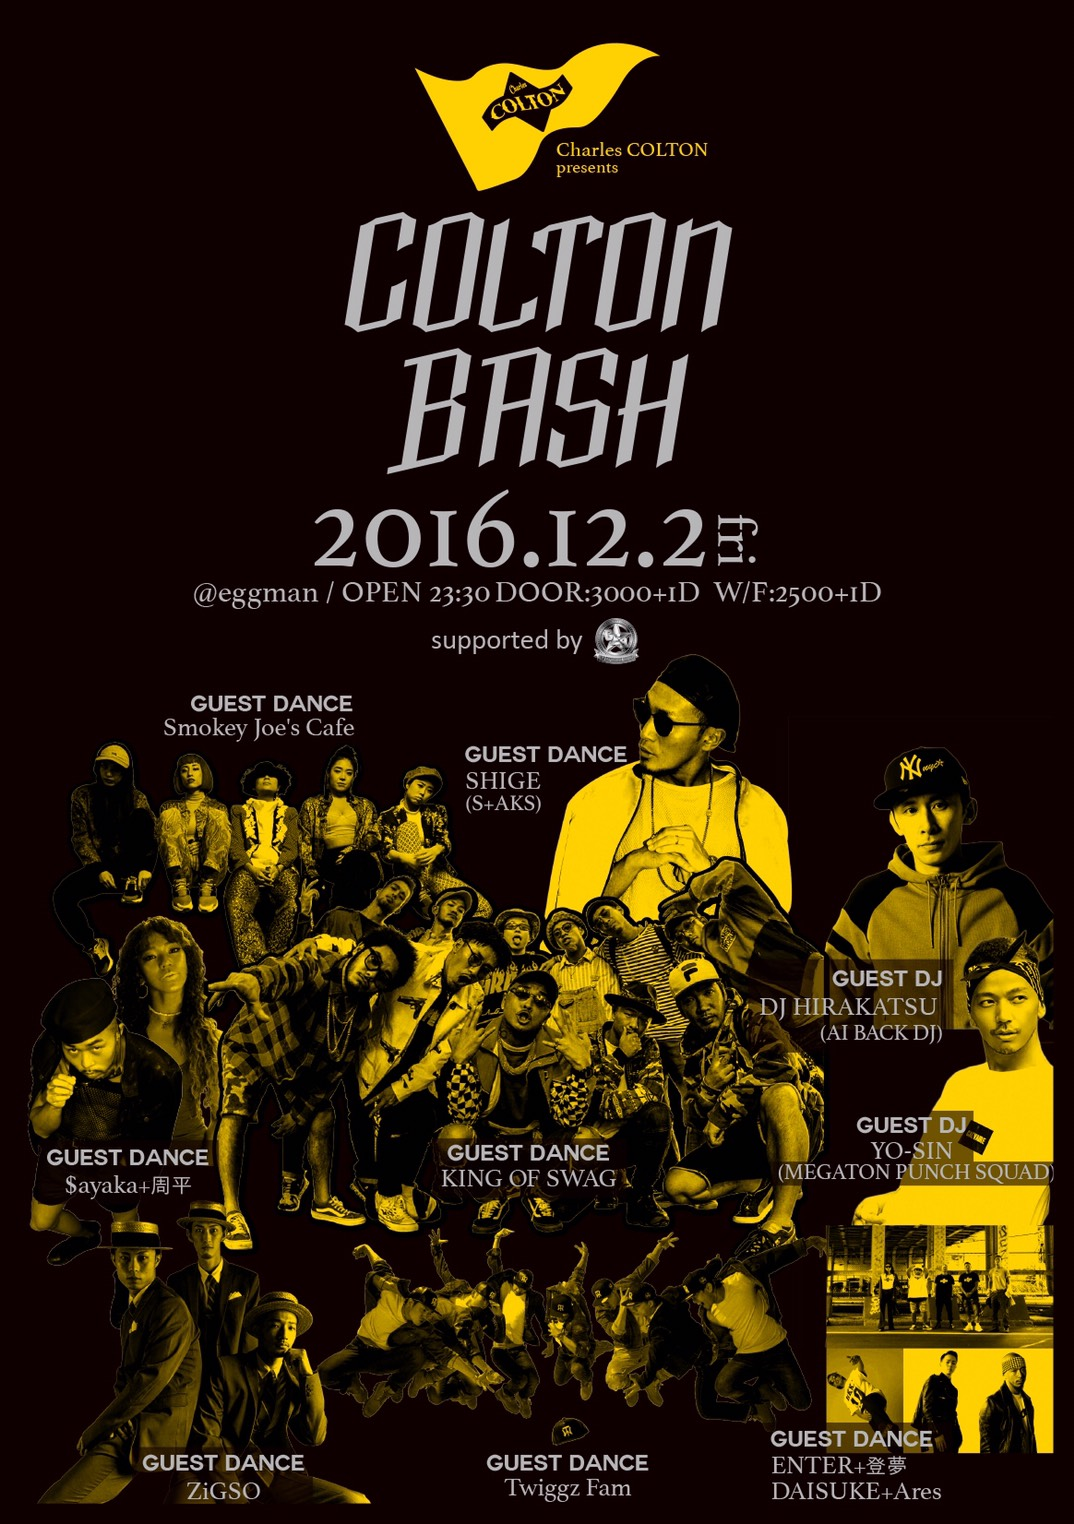 Charles COLTON presents<br>『COLTON BASH』<br> supported by GER